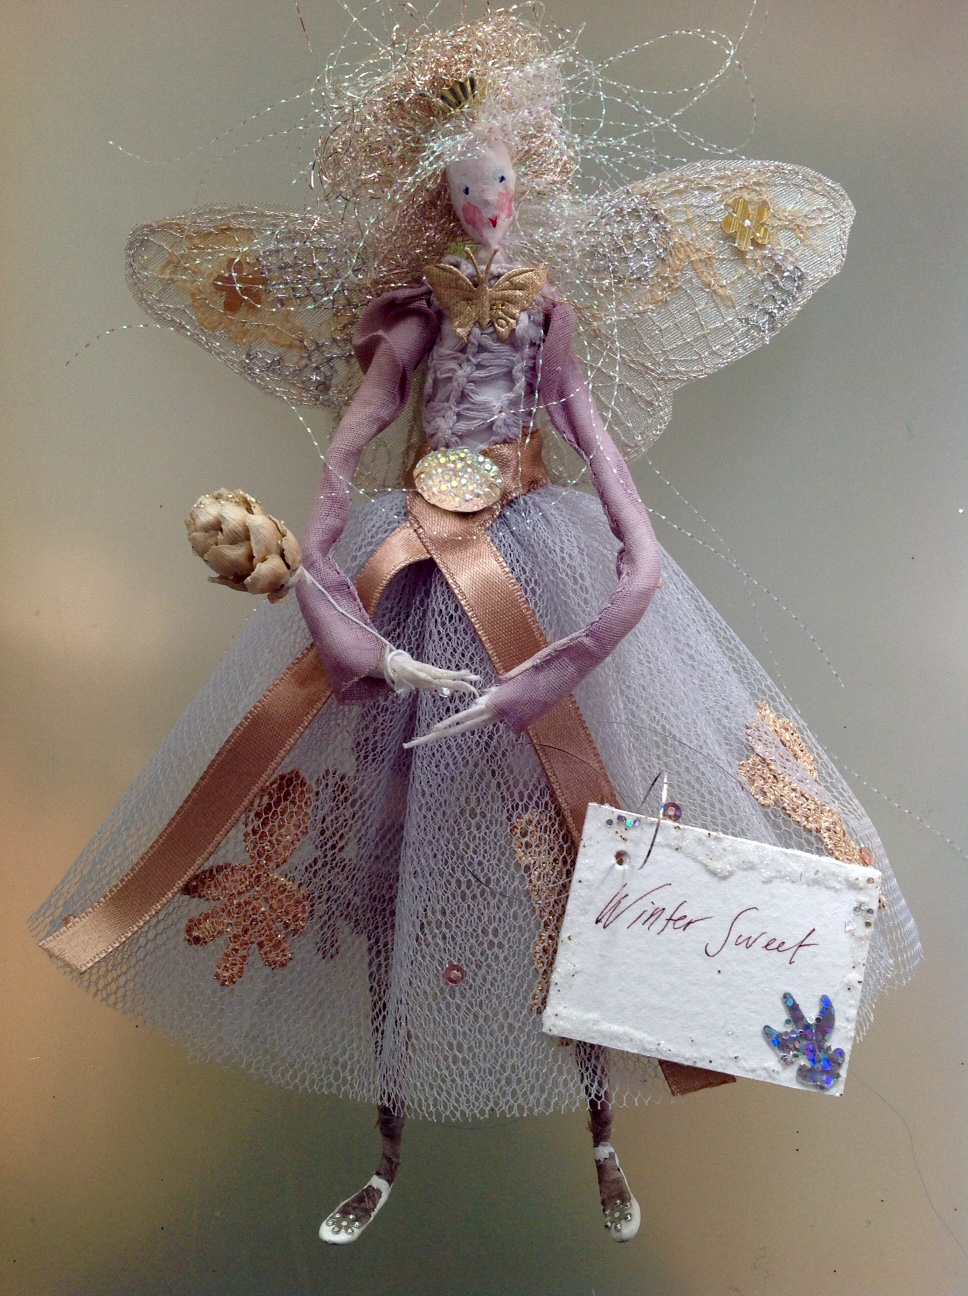 WINTER SWEET A 21cm high fairy . She has a painted silk face and embroidered wings, a stiff net skirt and hand dyed top and stockings ... all embellished with brocade and sequins . She has a pearl button at the back and is carrying a dried Alder cone wand.She comes in an organza bag with dried petals in it. £45 plus £3.50 p&p